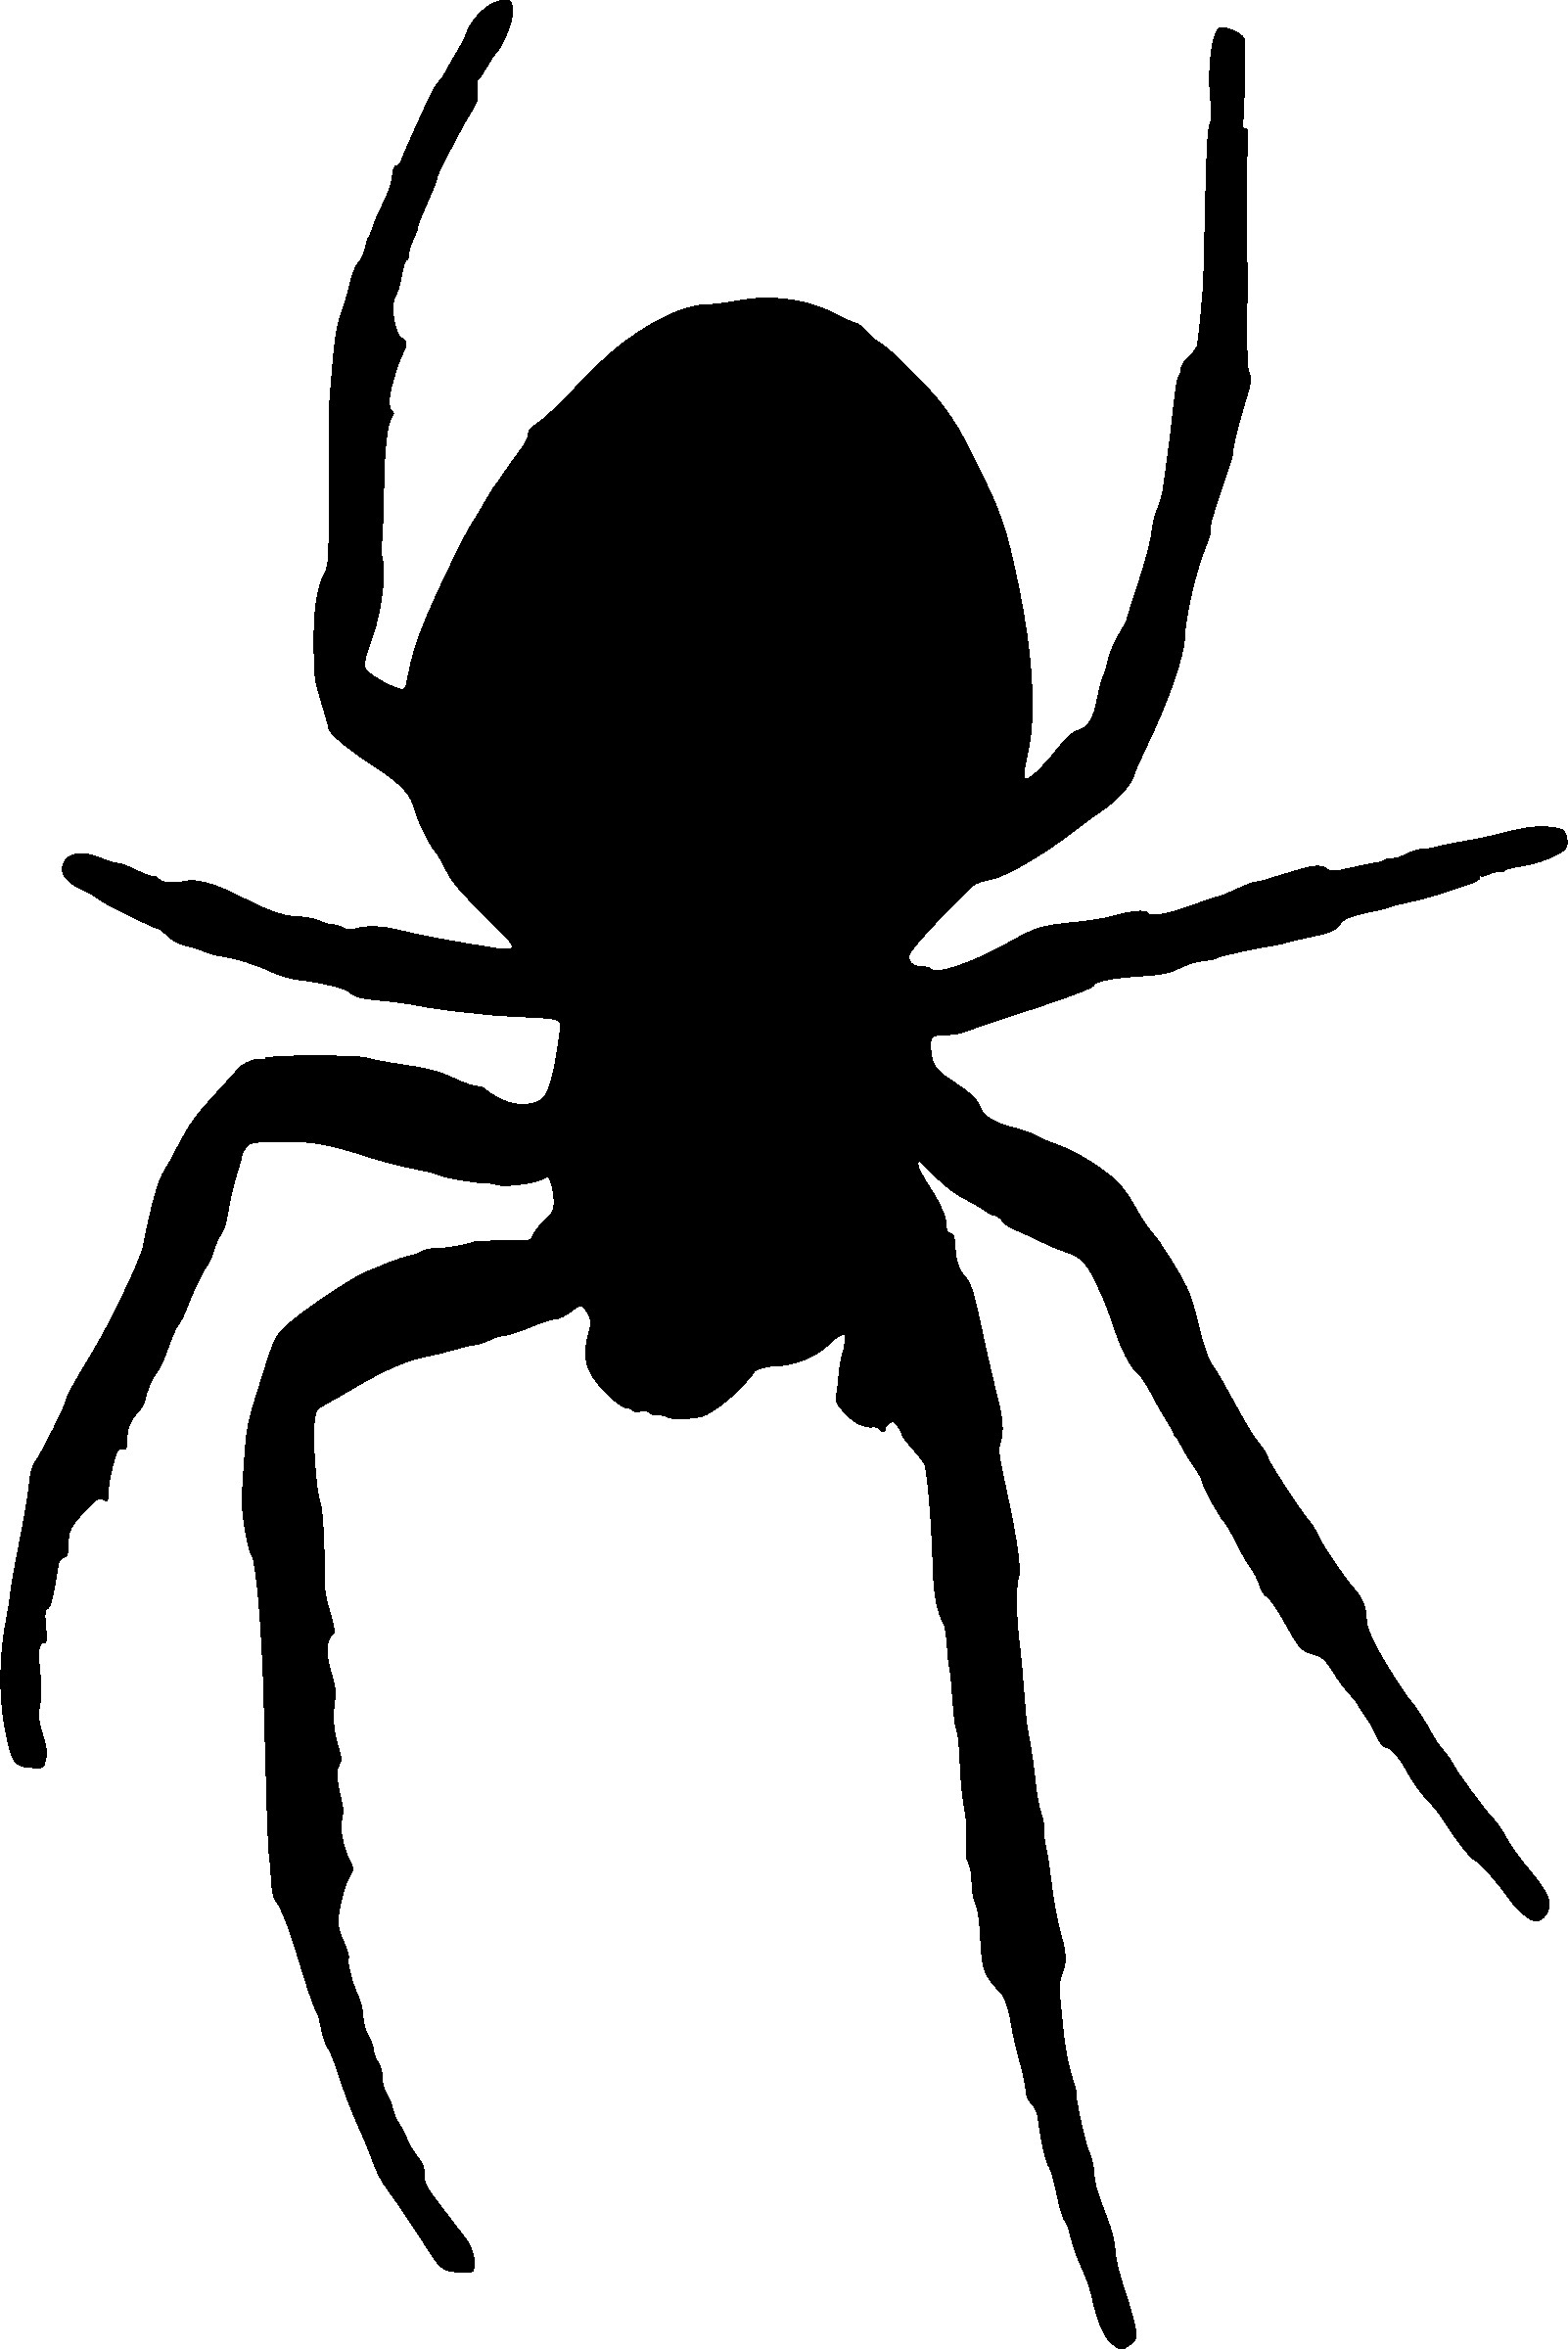 1602x2400 Spider Insect Black Silhouette Animal Vector Illustrator Stock